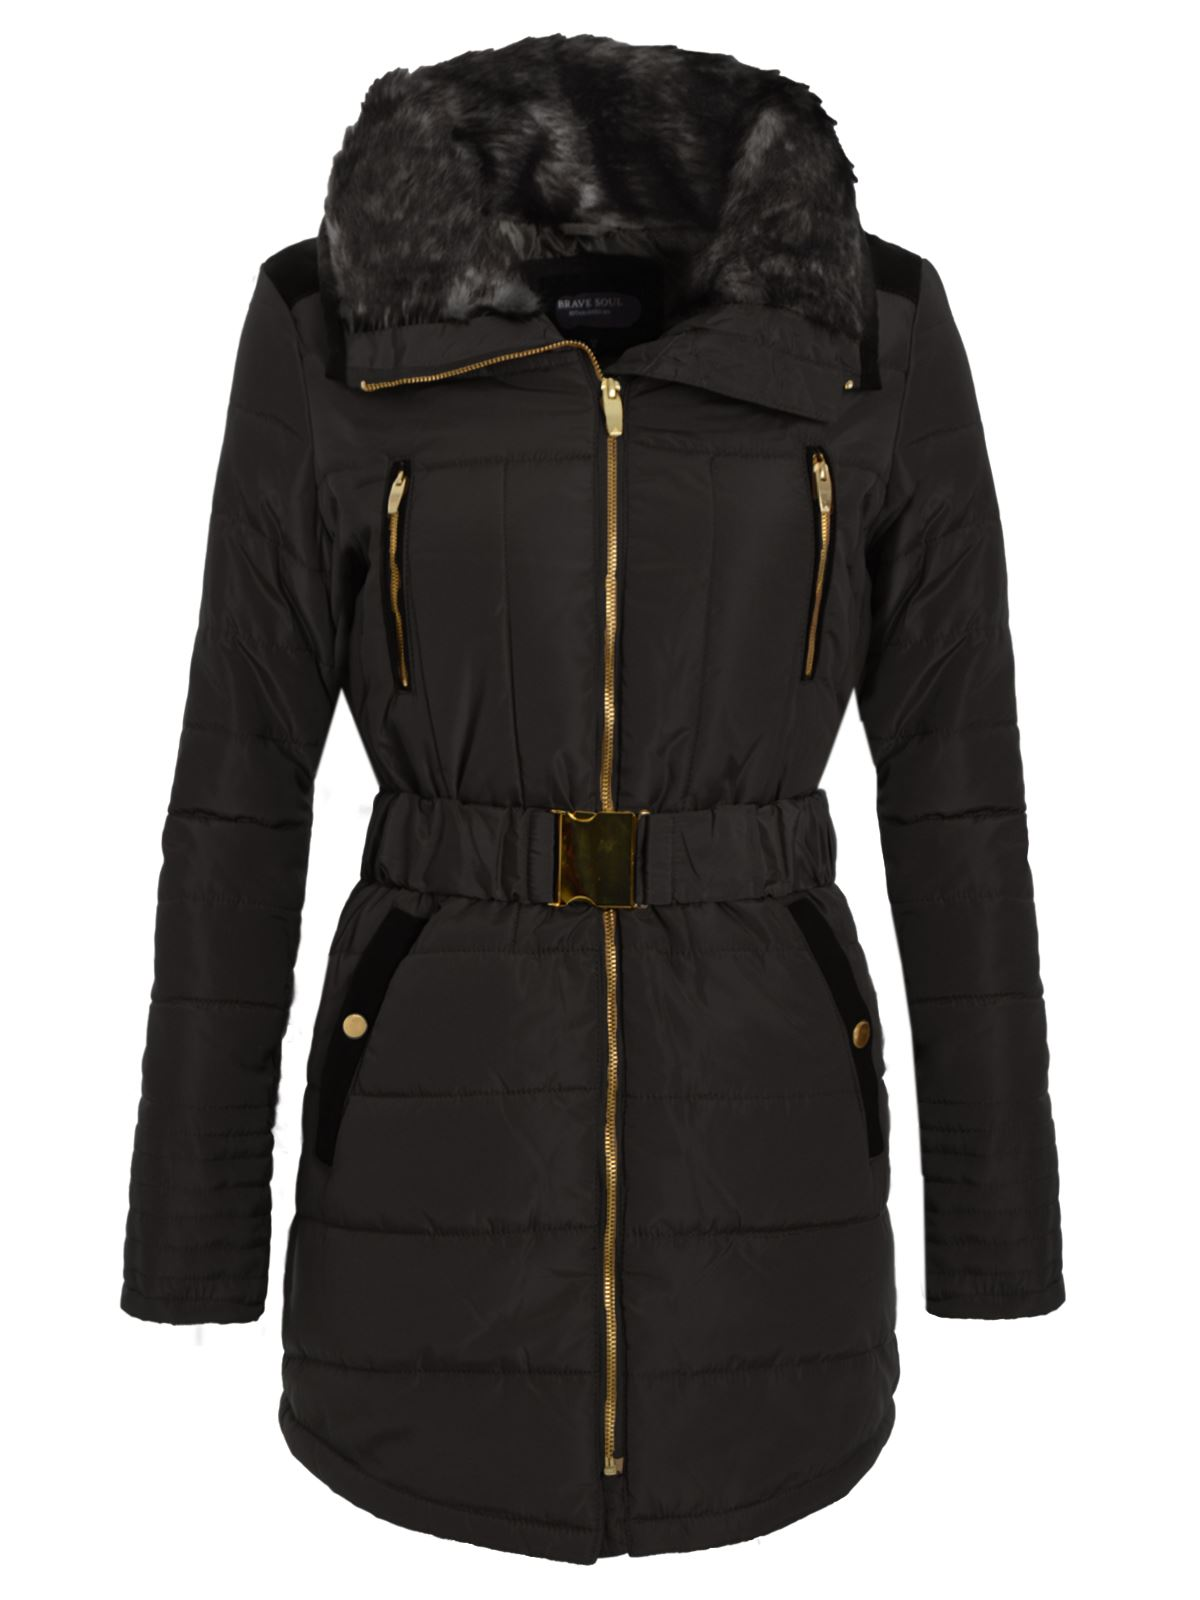 Newchic offers winter coats & down jackets at wholesale price, including womens fur coat, women puffer coat, women long trench coat. Shop coats and jackets you love. We uses cookies (and similar techniques) to provide you with better products and services.